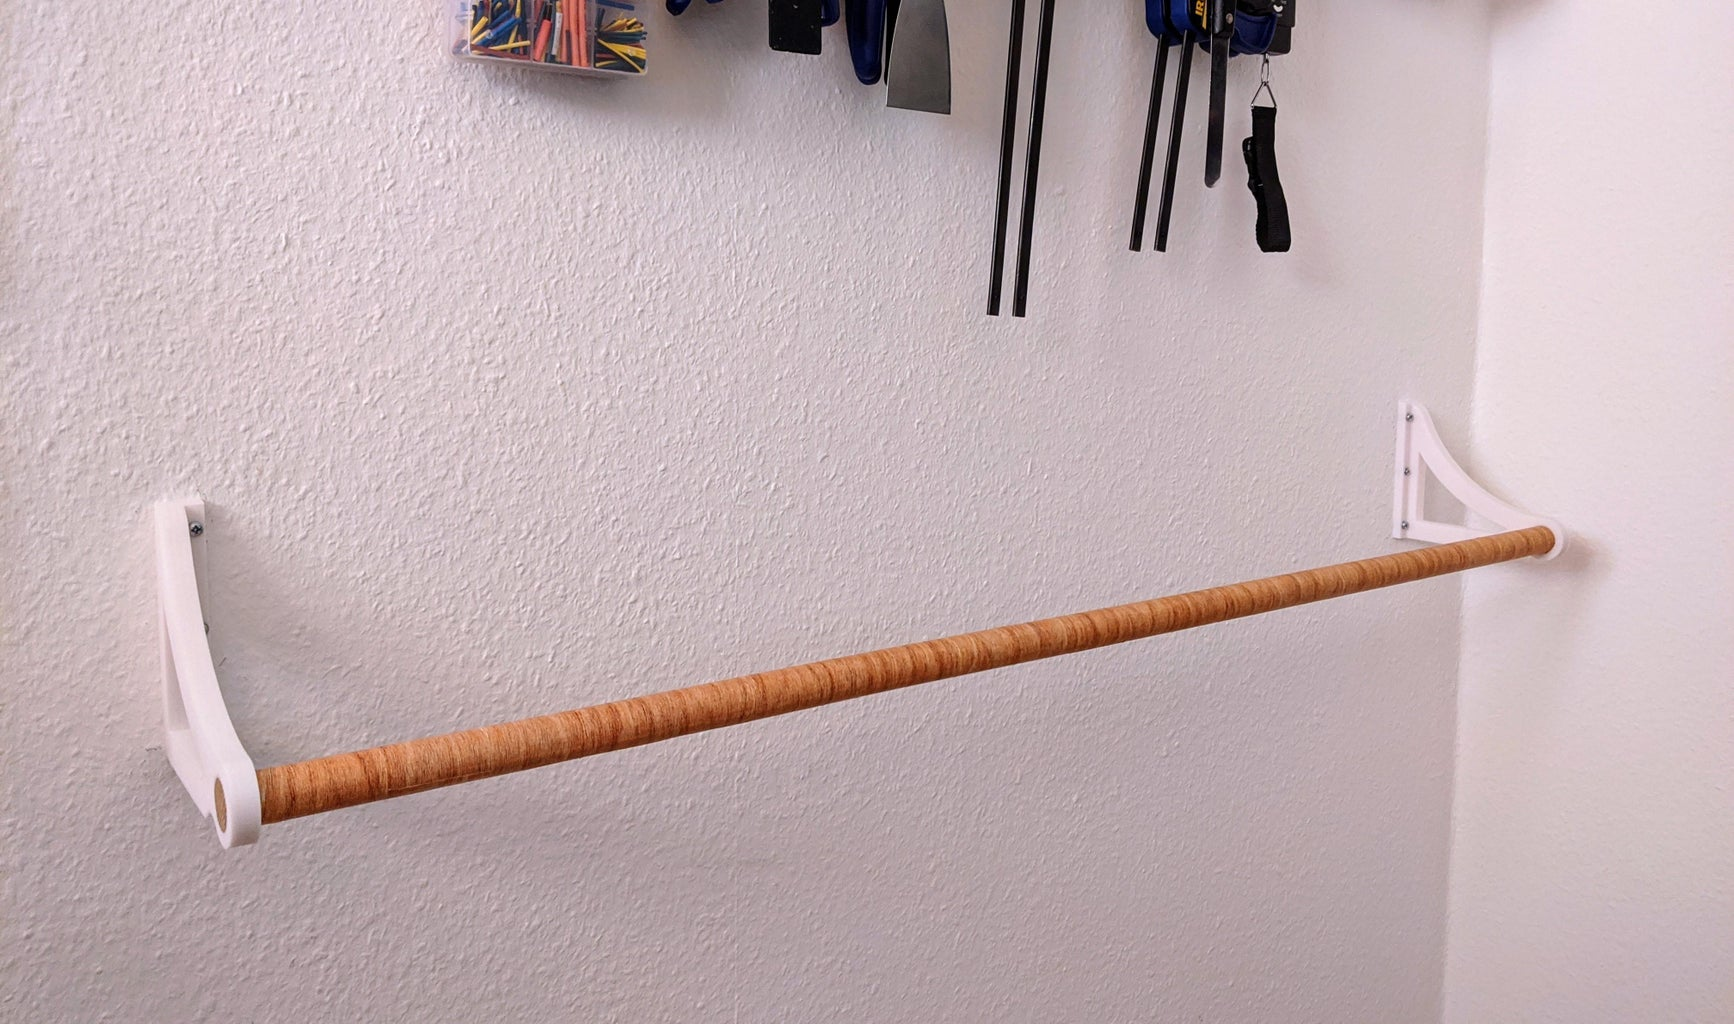 Install the Wooden Rod